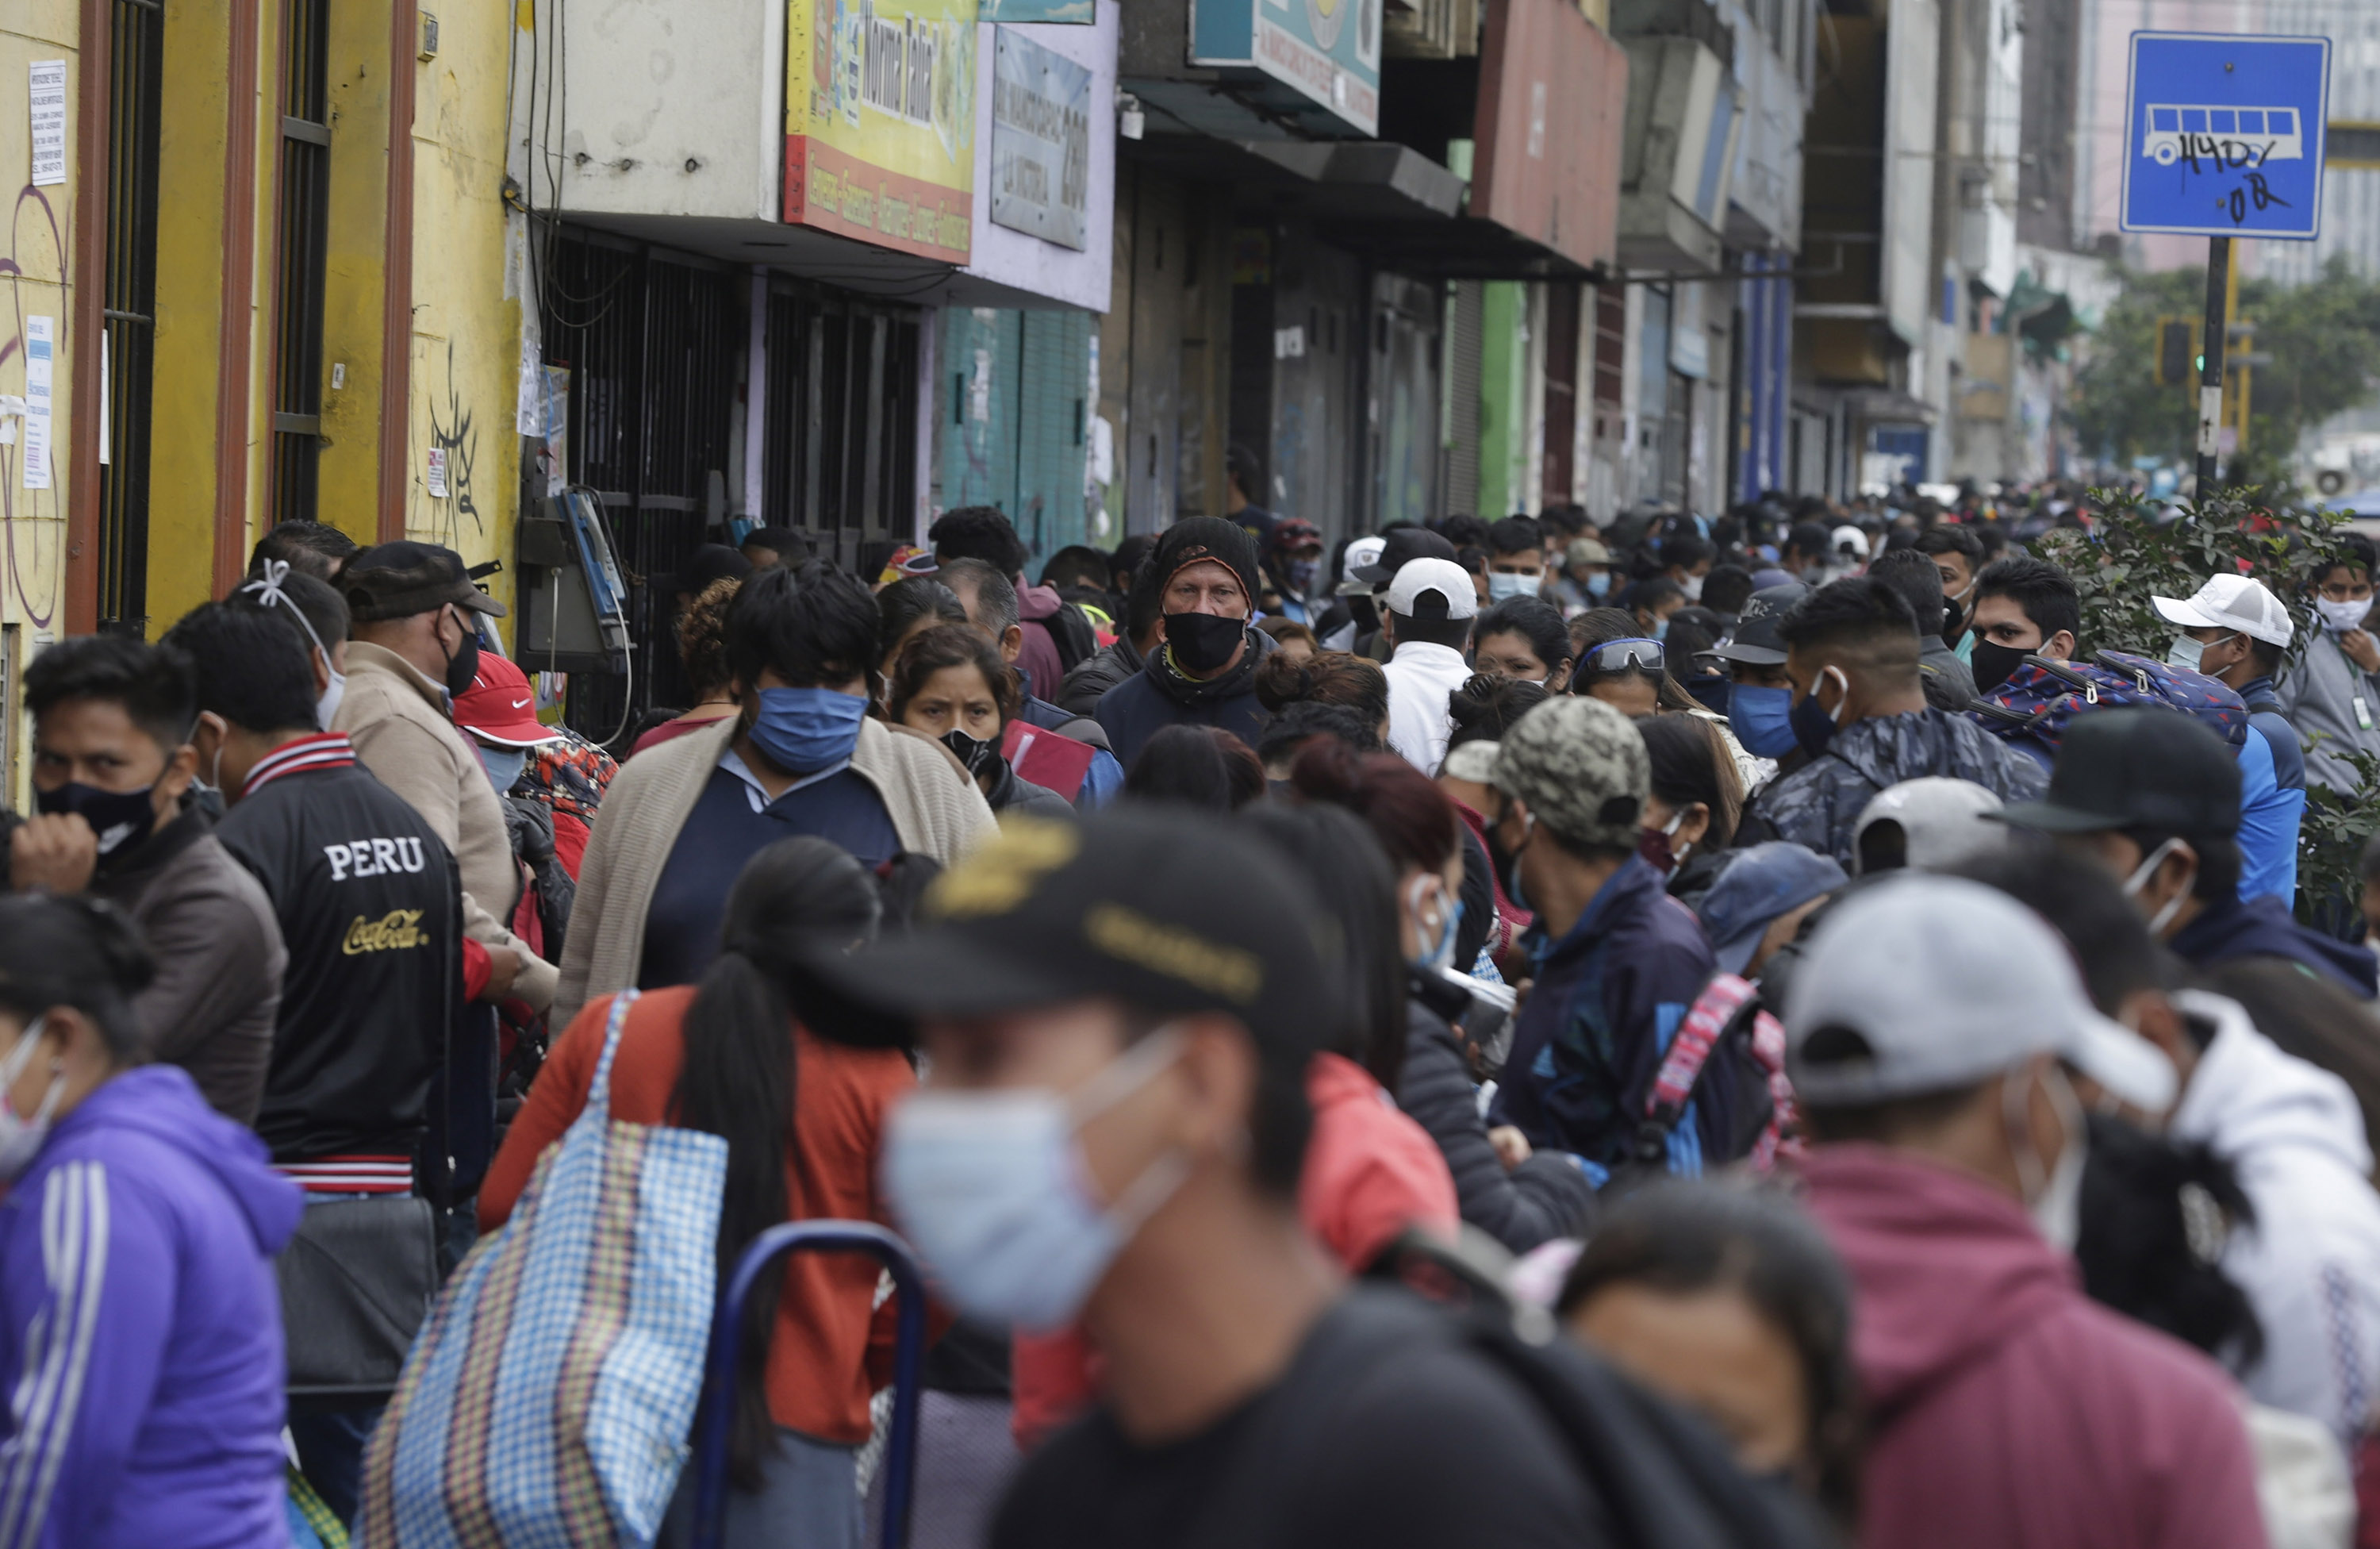 Streets vendors and shoppers wear masks during the coronavirus global pandemic in Lima, Peru, on Monday, June 8.